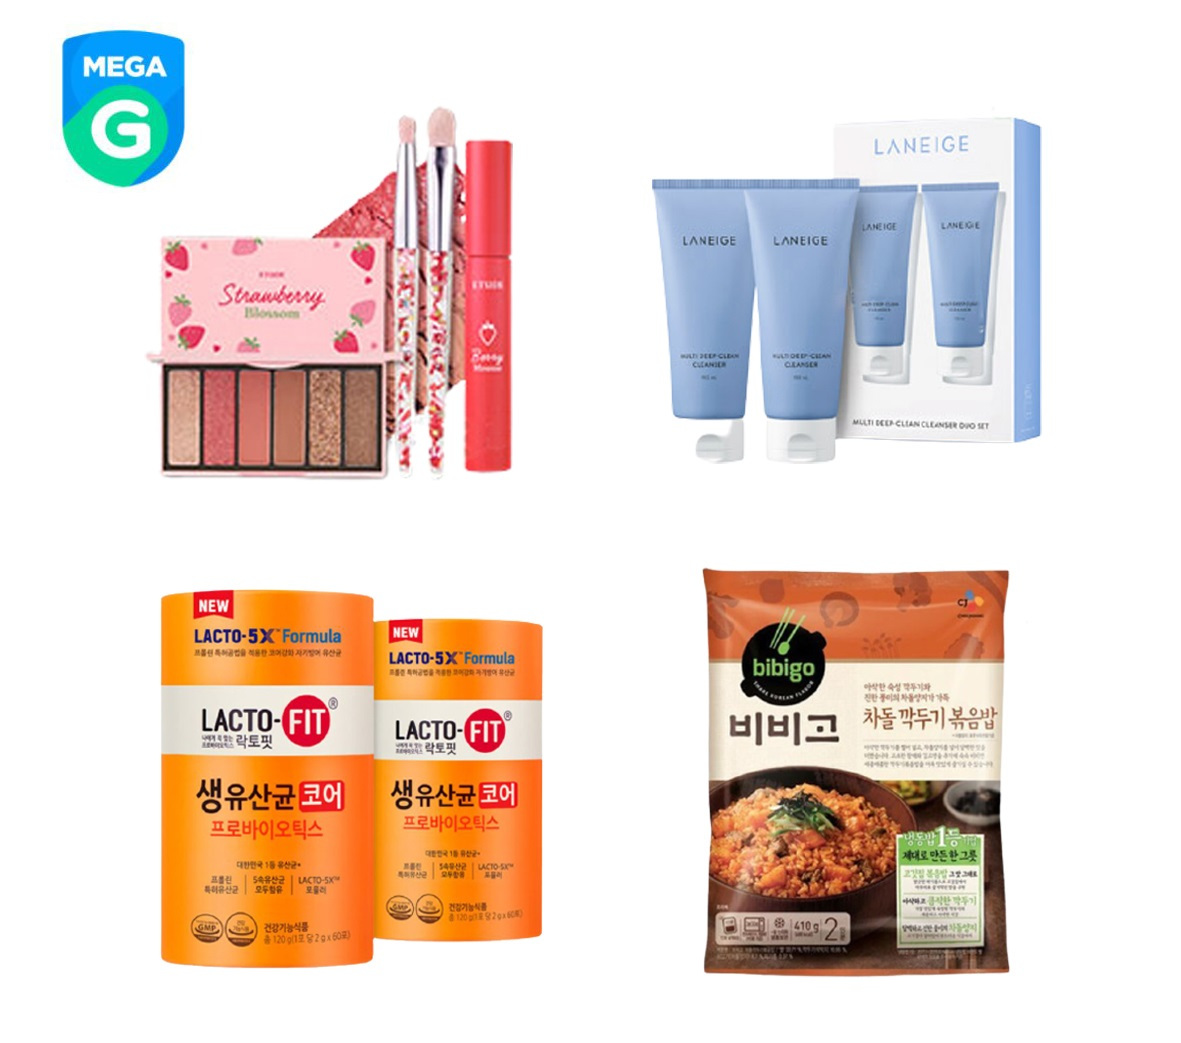 This image provided by Gmarket shows hit products from its Mega G-Festival held in the run-up to the Chuseok holiday season.